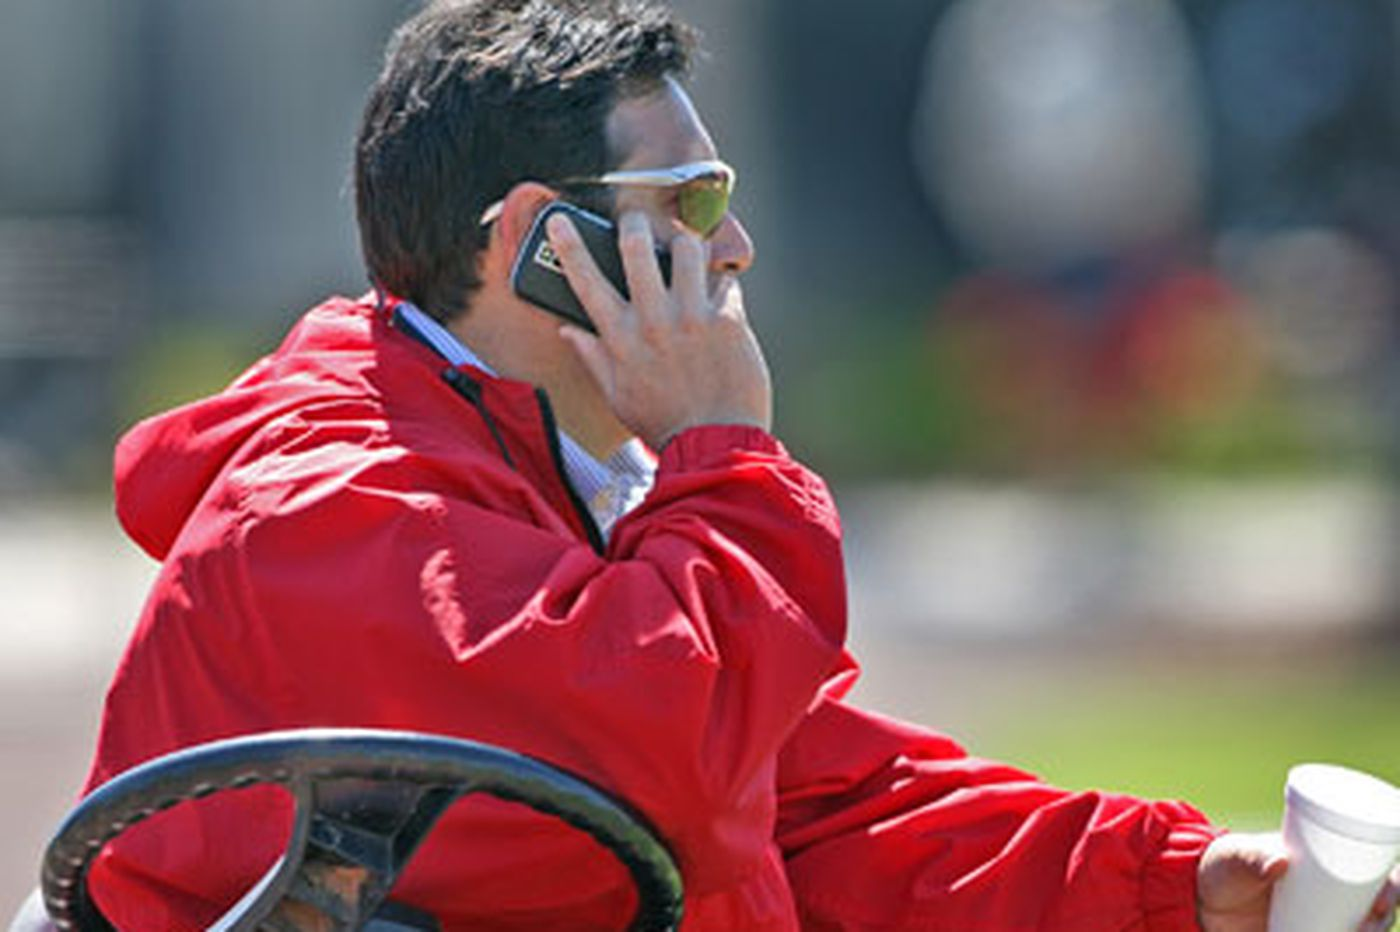 Sam Donnellon: Phillies GM Amaro on a lucky streak right now